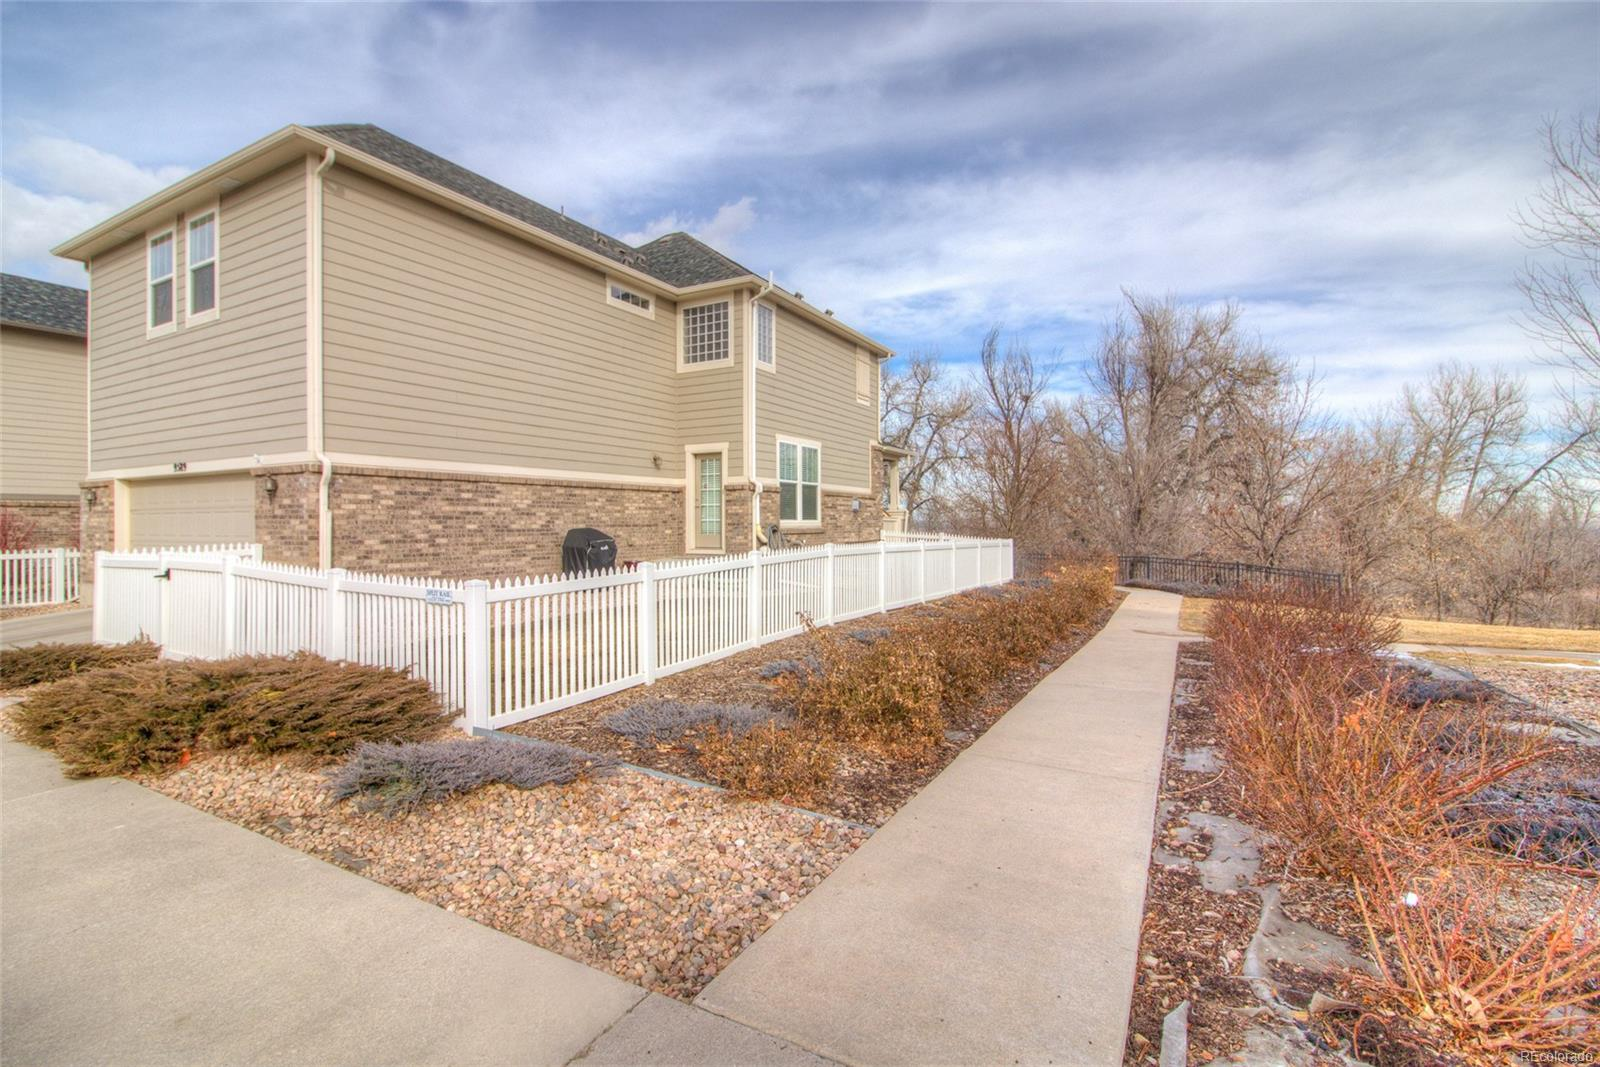 Great location in the community with walking path adjacent instead of another ho